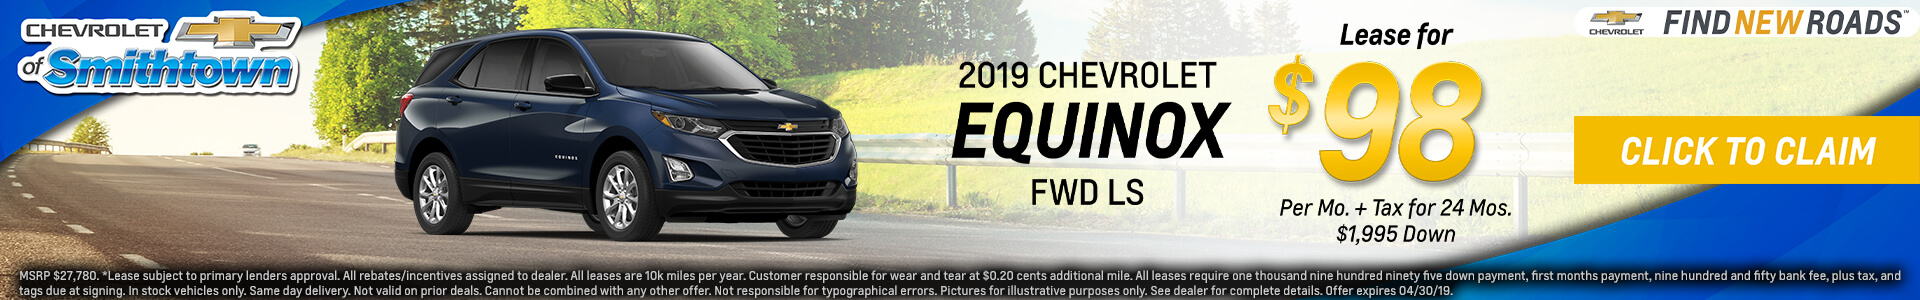 Chevrolet Equinox $98 Lease